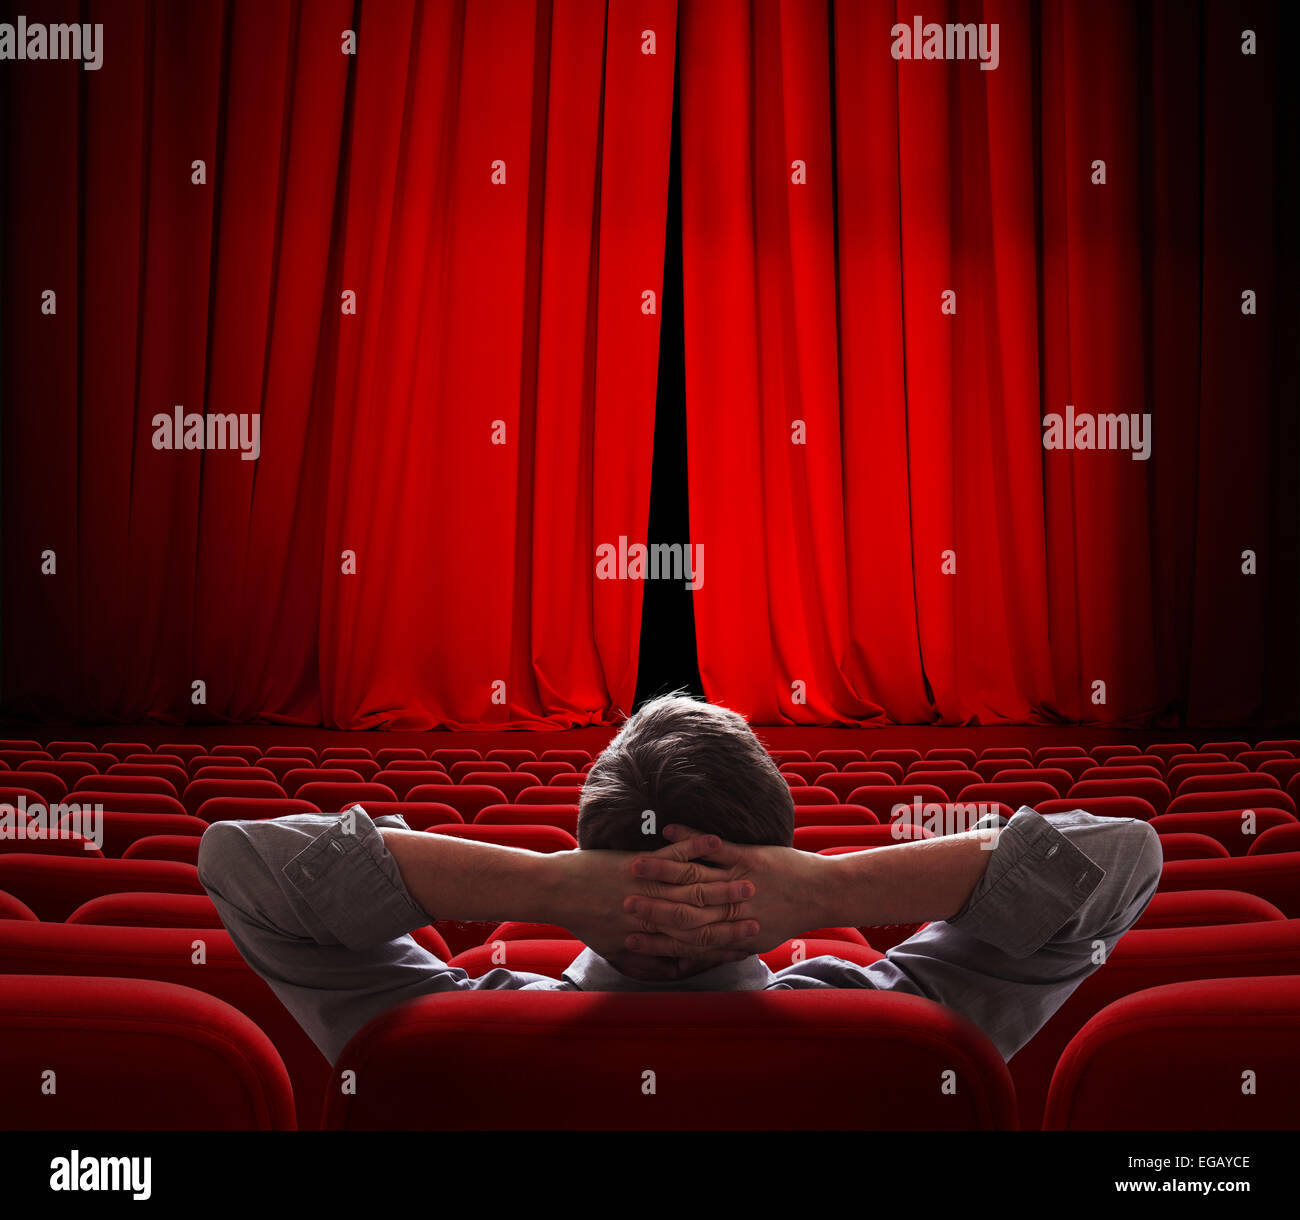 cinema screen red curtains slightly open for vip person - Stock Image